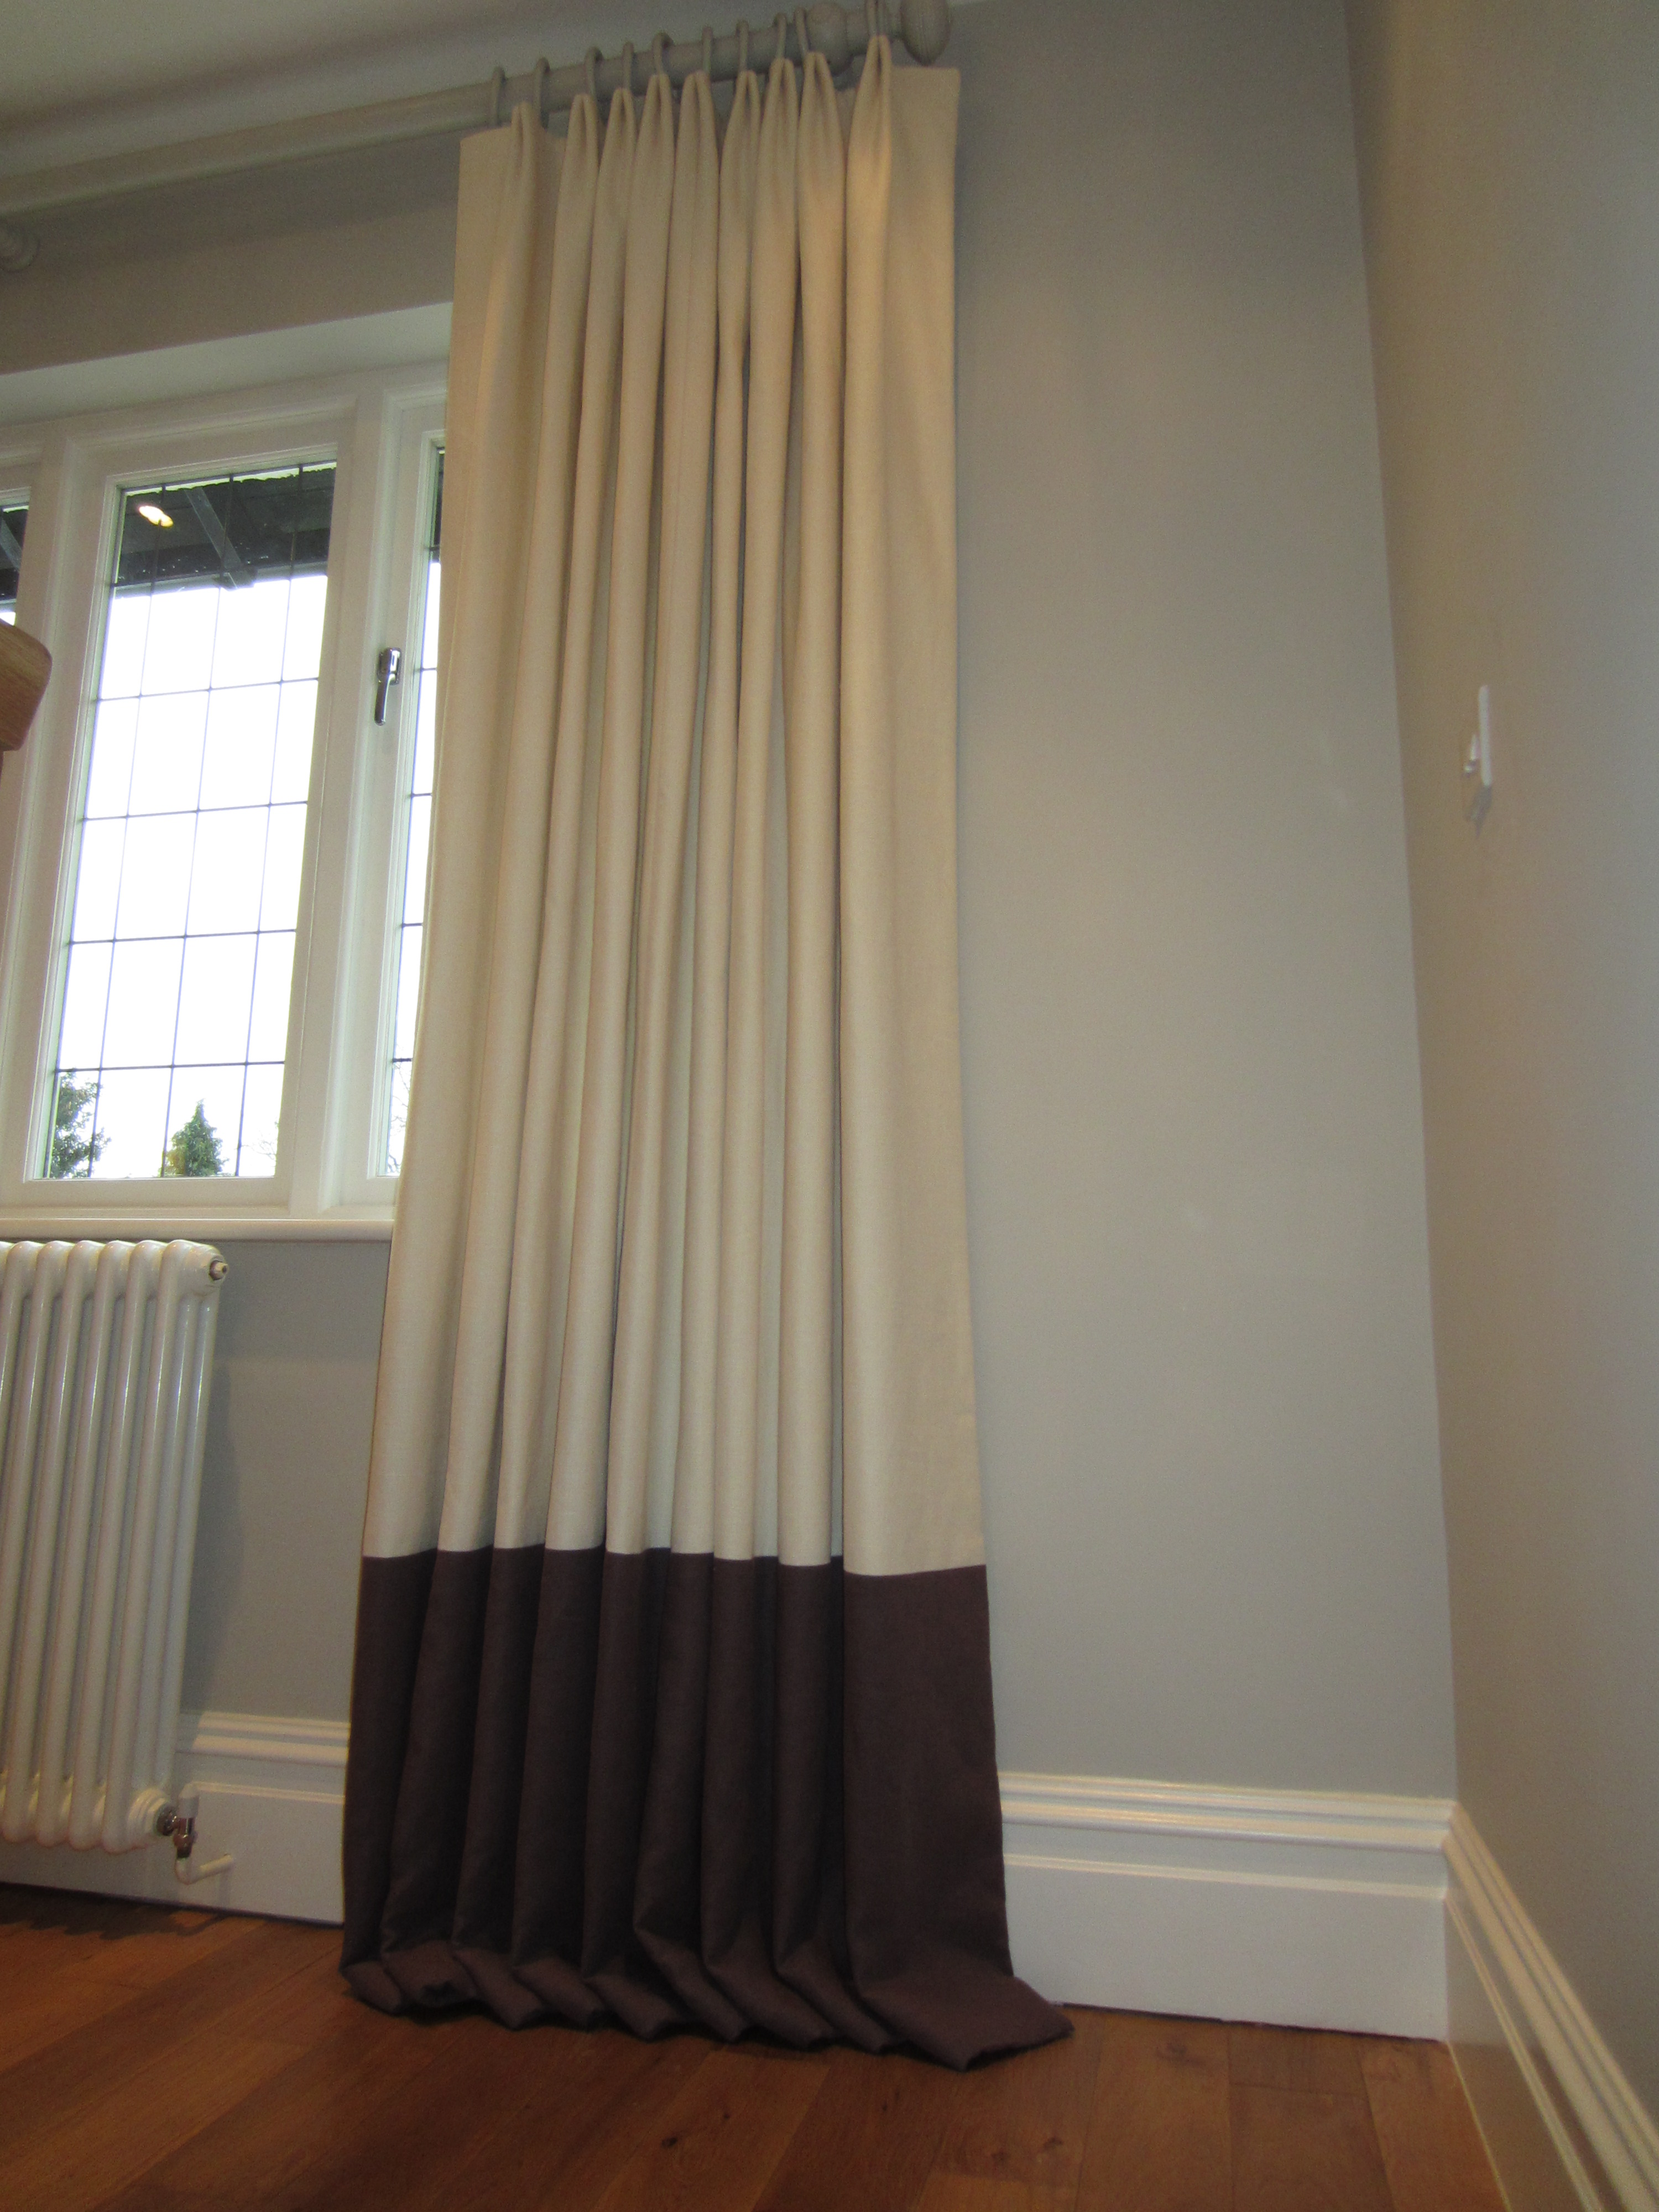 Full Length Curtains Should Either Skim The Floor, Be 1/4u2033 Off, Kick 3 / 6  Inches Onto The Floor Or Pool 10u2033 And Over.